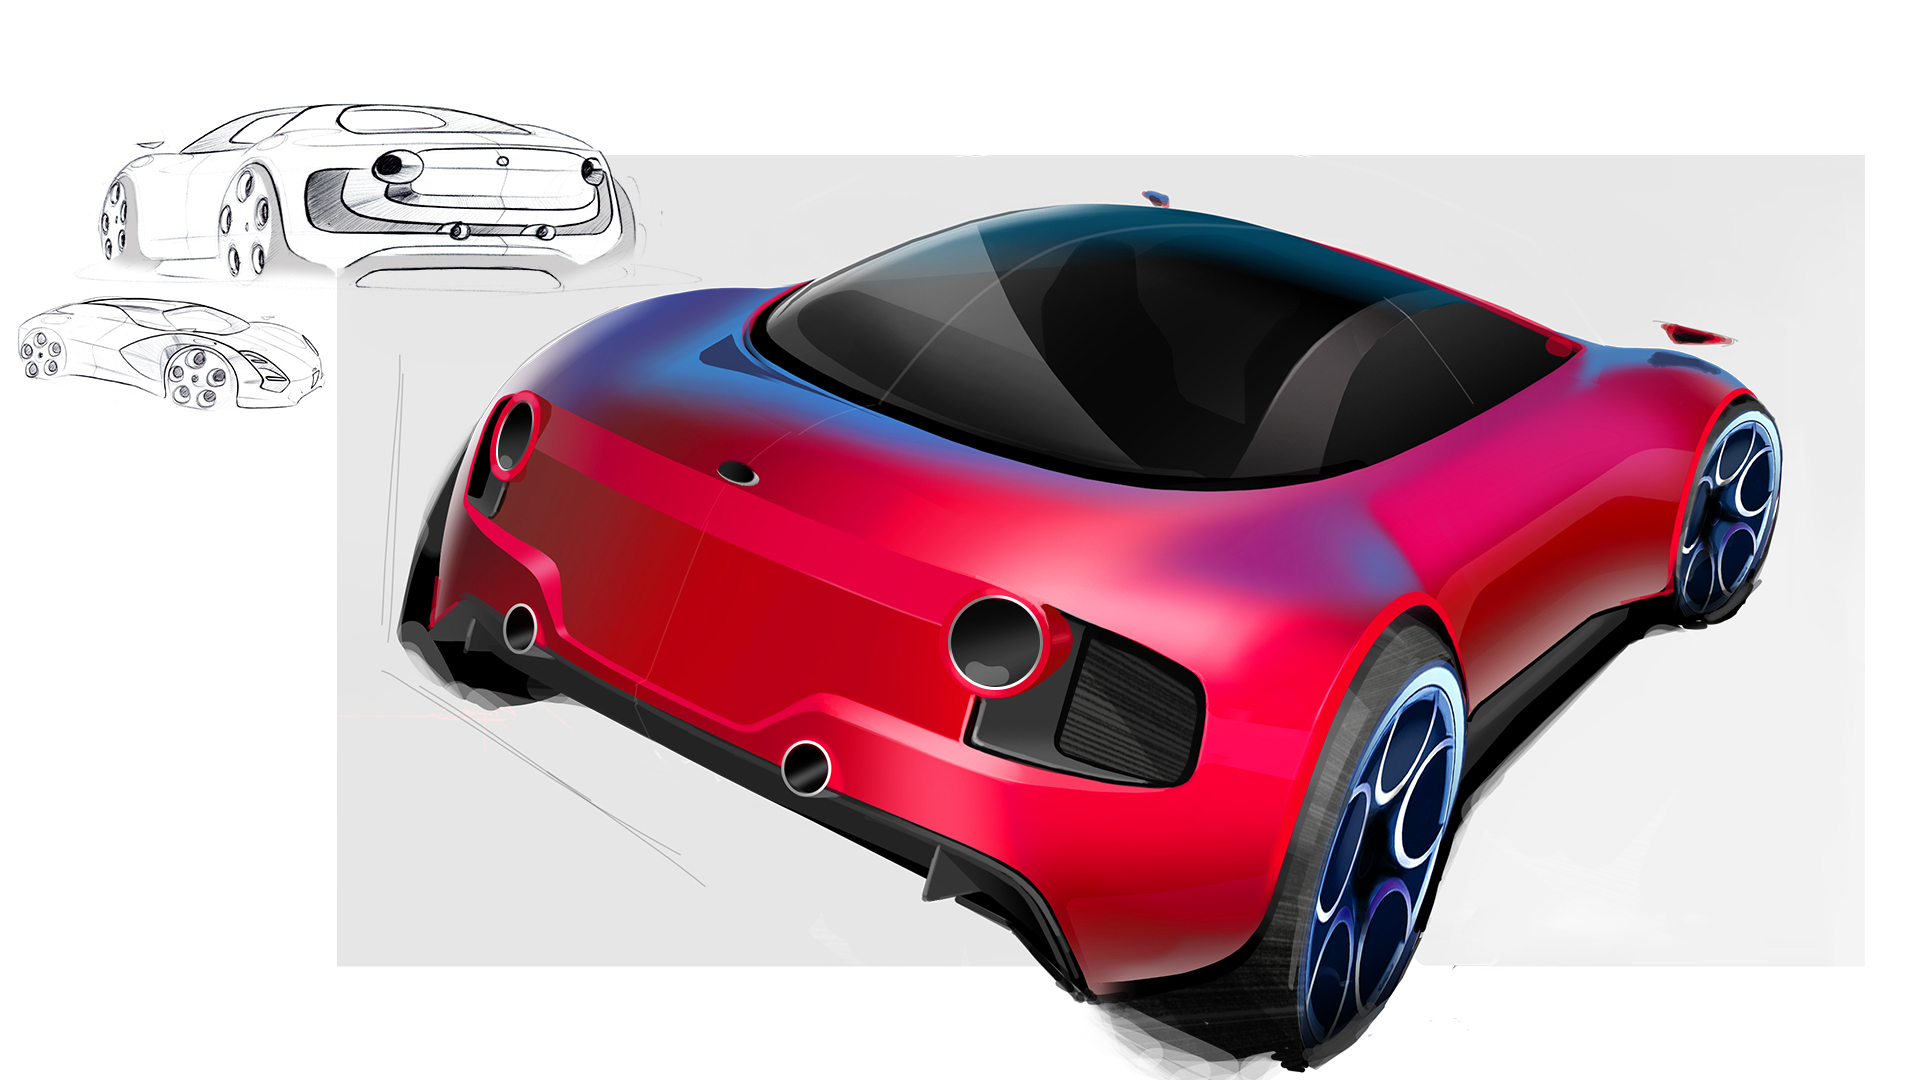 red sporty car design sketch progress in three steps from idea to rendering back